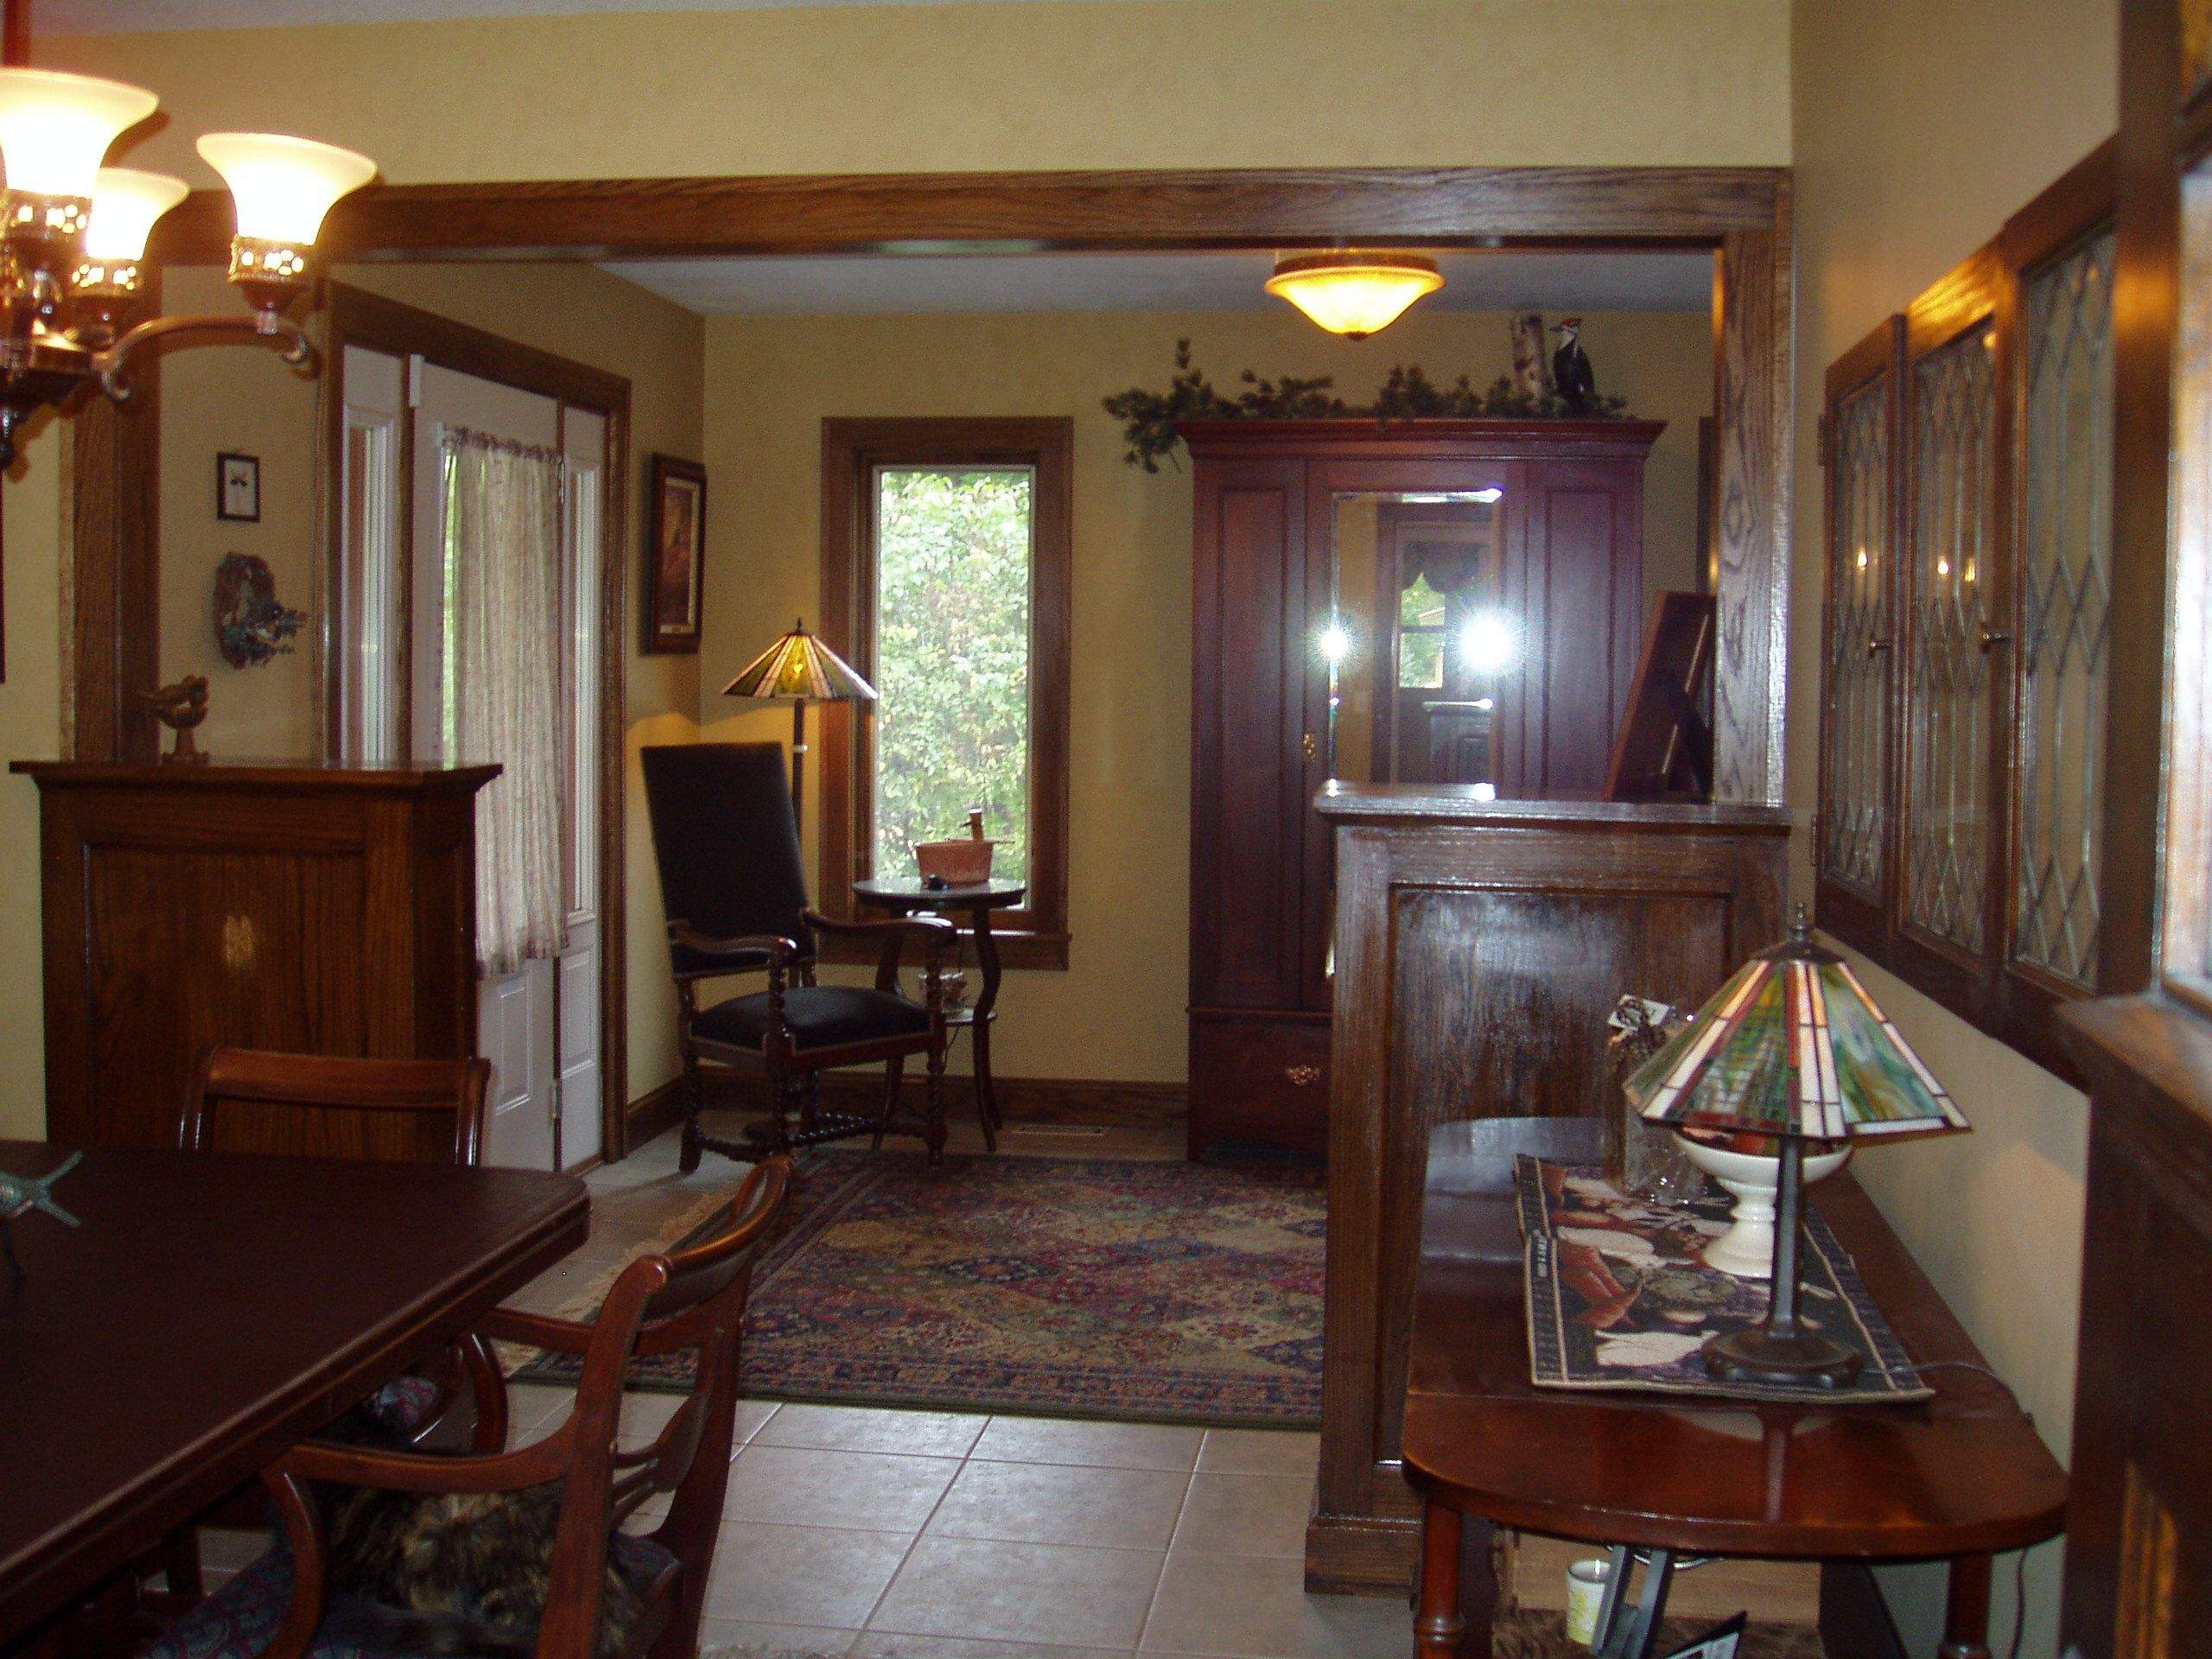 cabinets from the 1940's bungalow were re-installed into their new home in this new dining/foyer addition.